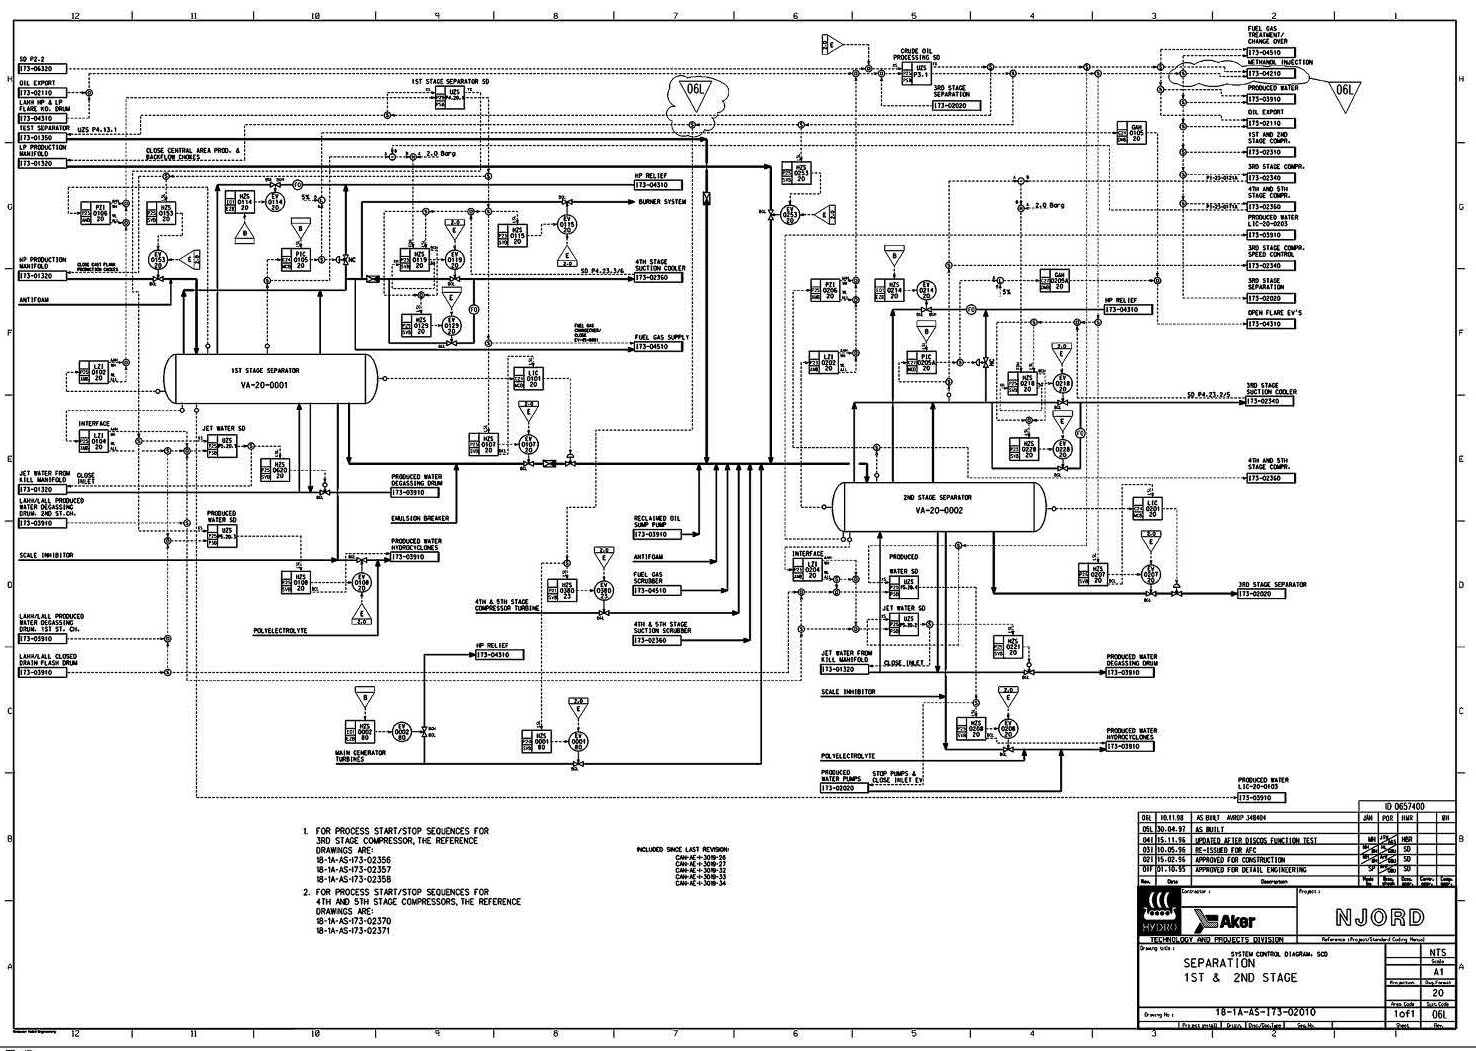 hight resolution of these include loop diagram instrument datasheet cable schedule and termination list